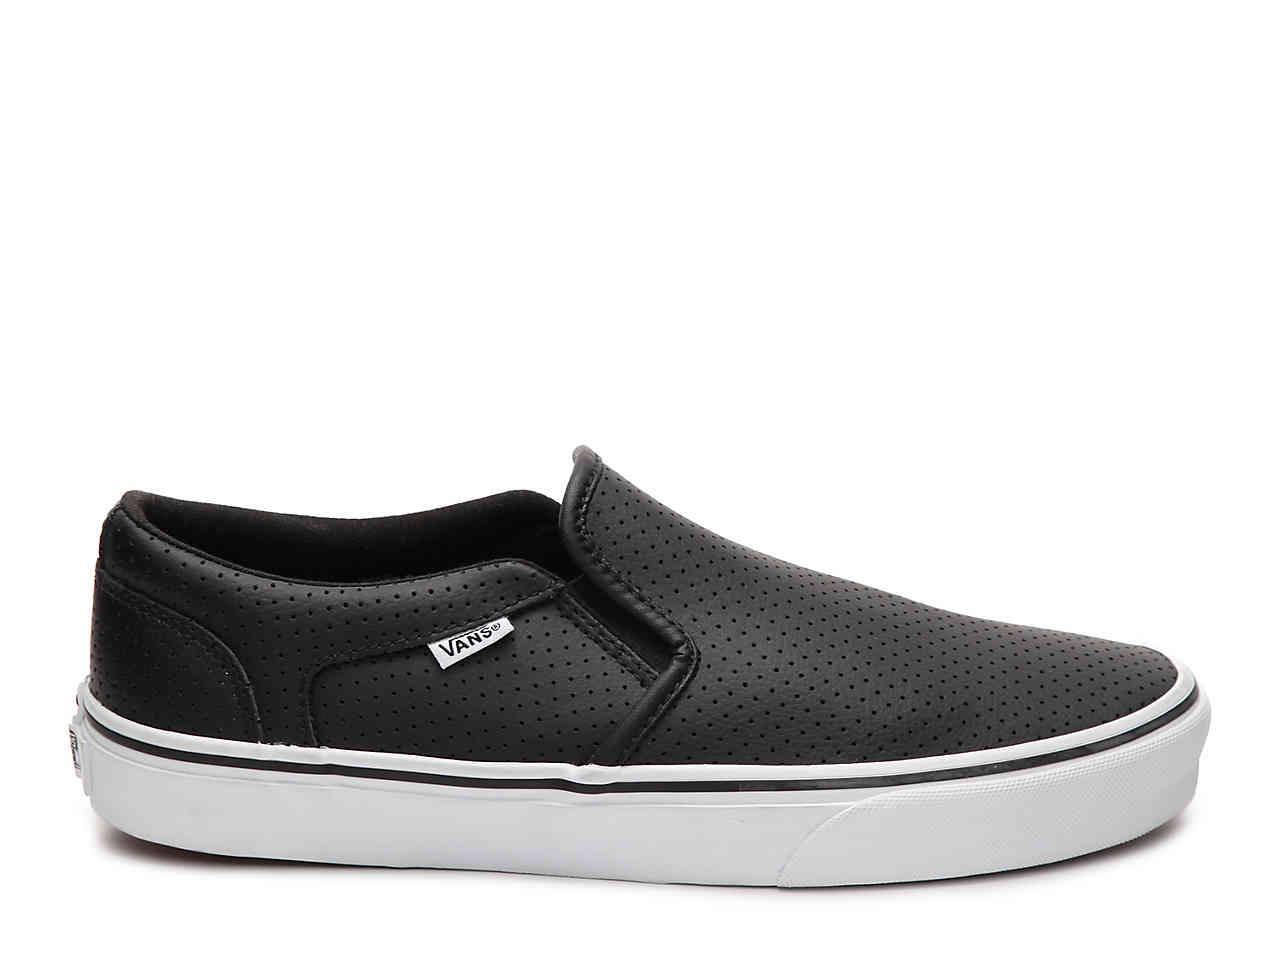 vans perforated leather slip on